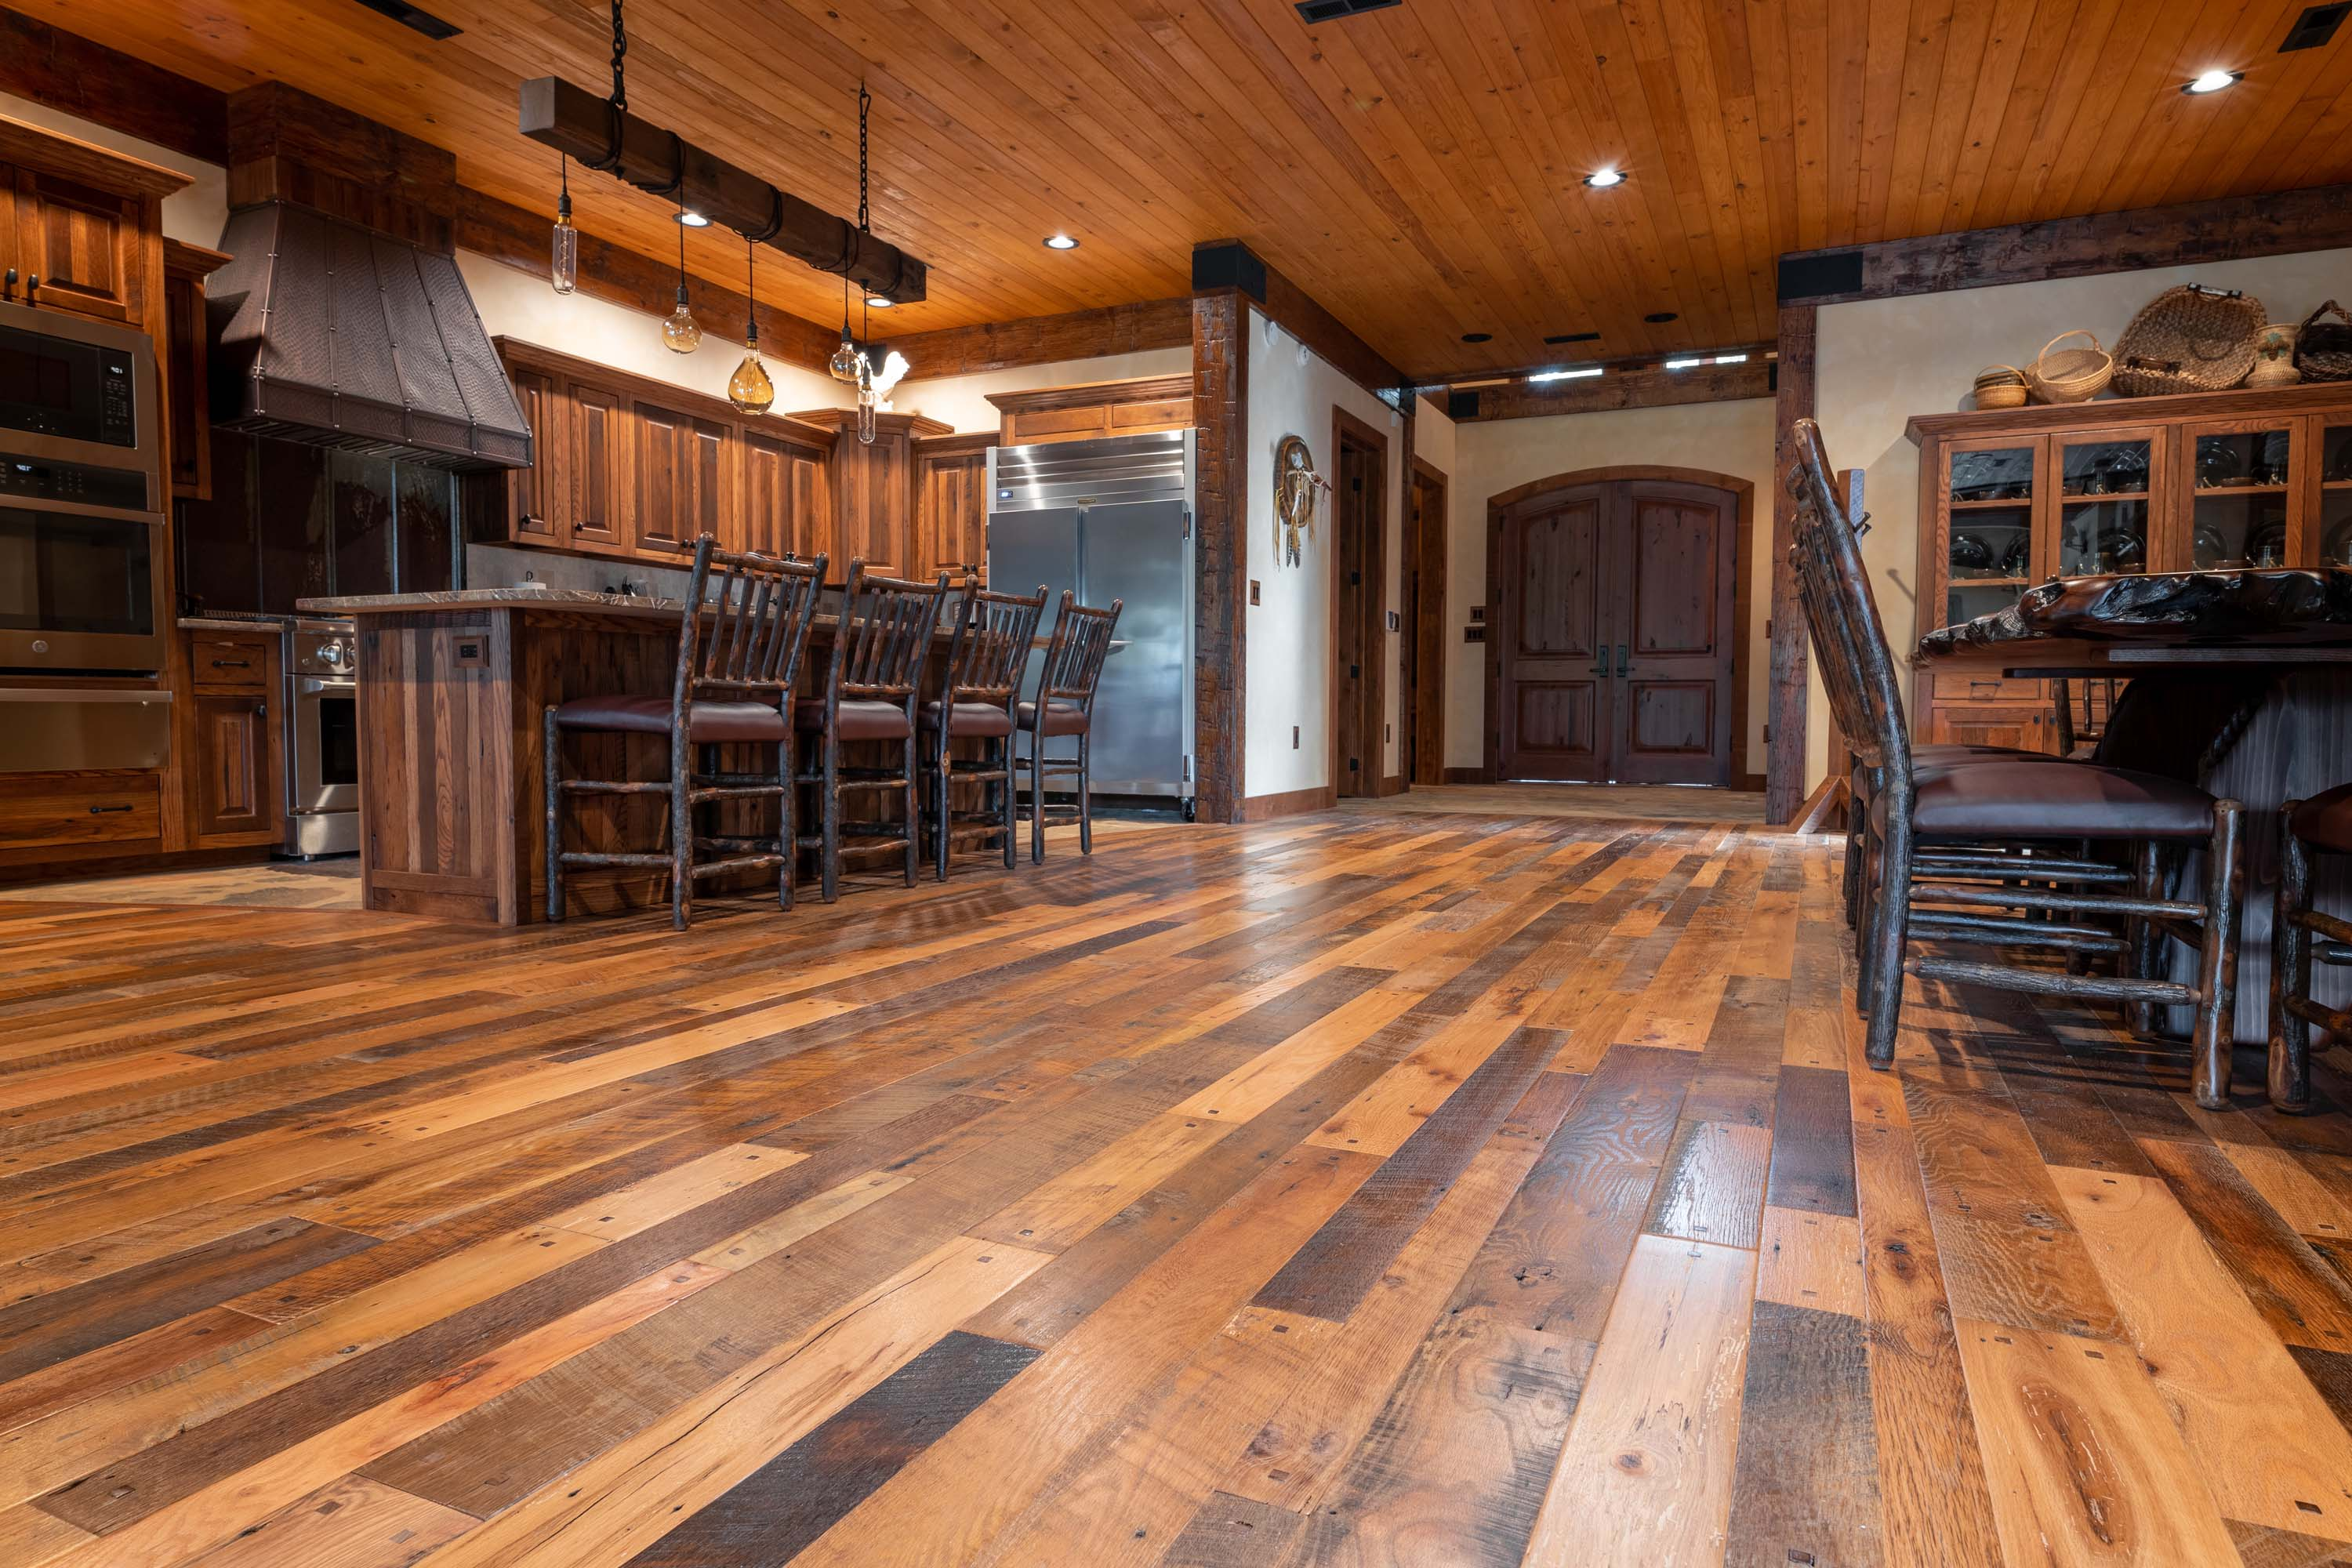 A kitchen in a cabin style house with reclaimed americana reclaimed wood flooring by Tennessee Wood Flooring. This hardwood floor is authentically made in the east tennessee area.